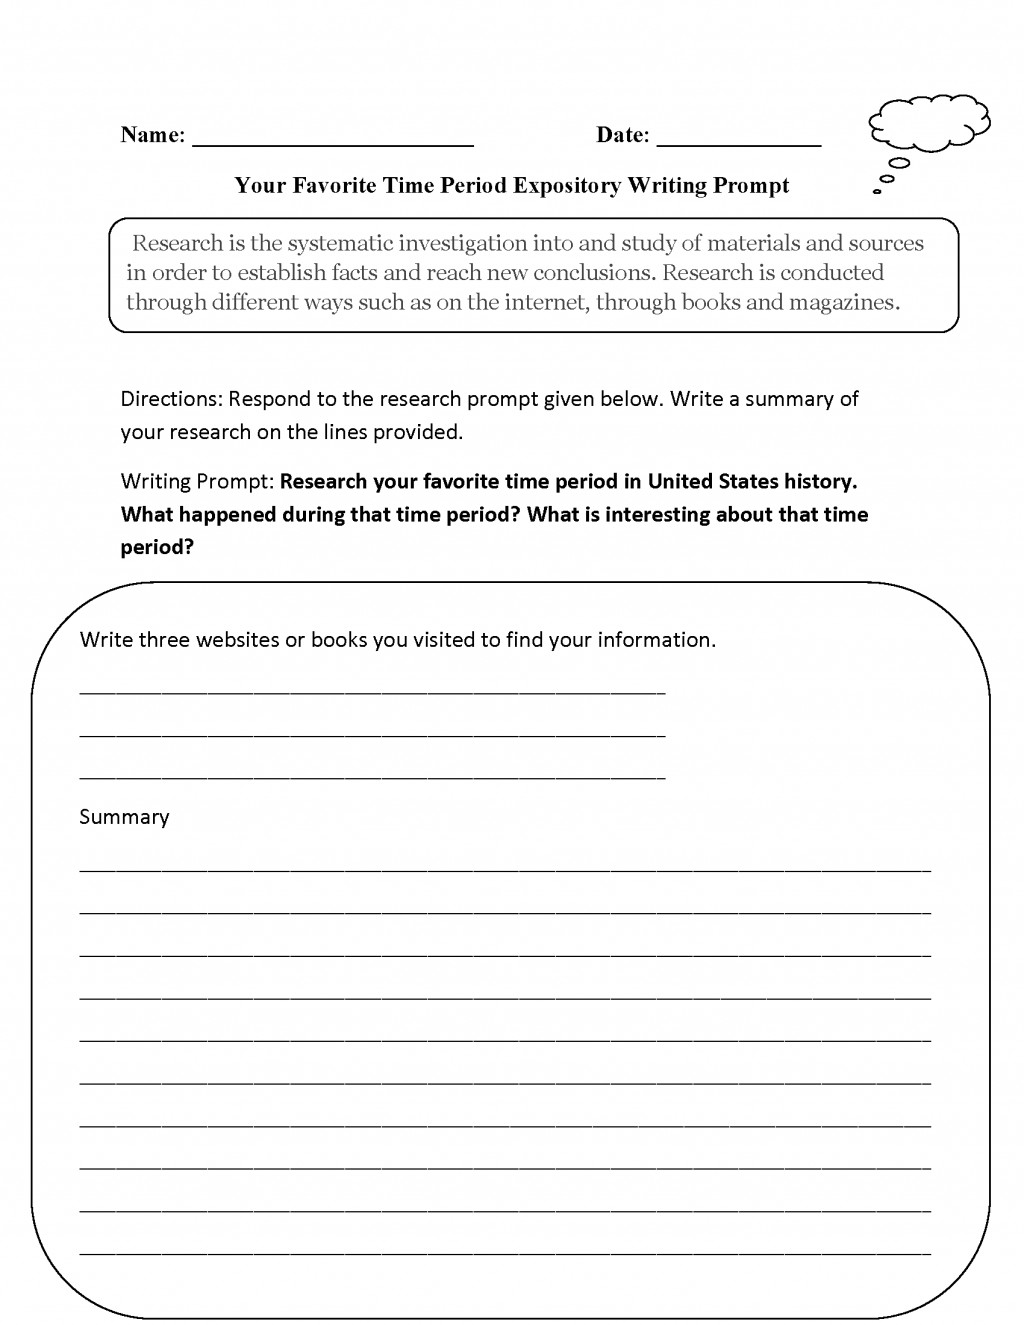 017 Informational Essay Prompts Informative Writing For College Students Favorite Time Period Expository P Elementary High School Middle 6th Grade 9th 5th Adults Unforgettable Rubric 4th Outline Explanatory Definition Large